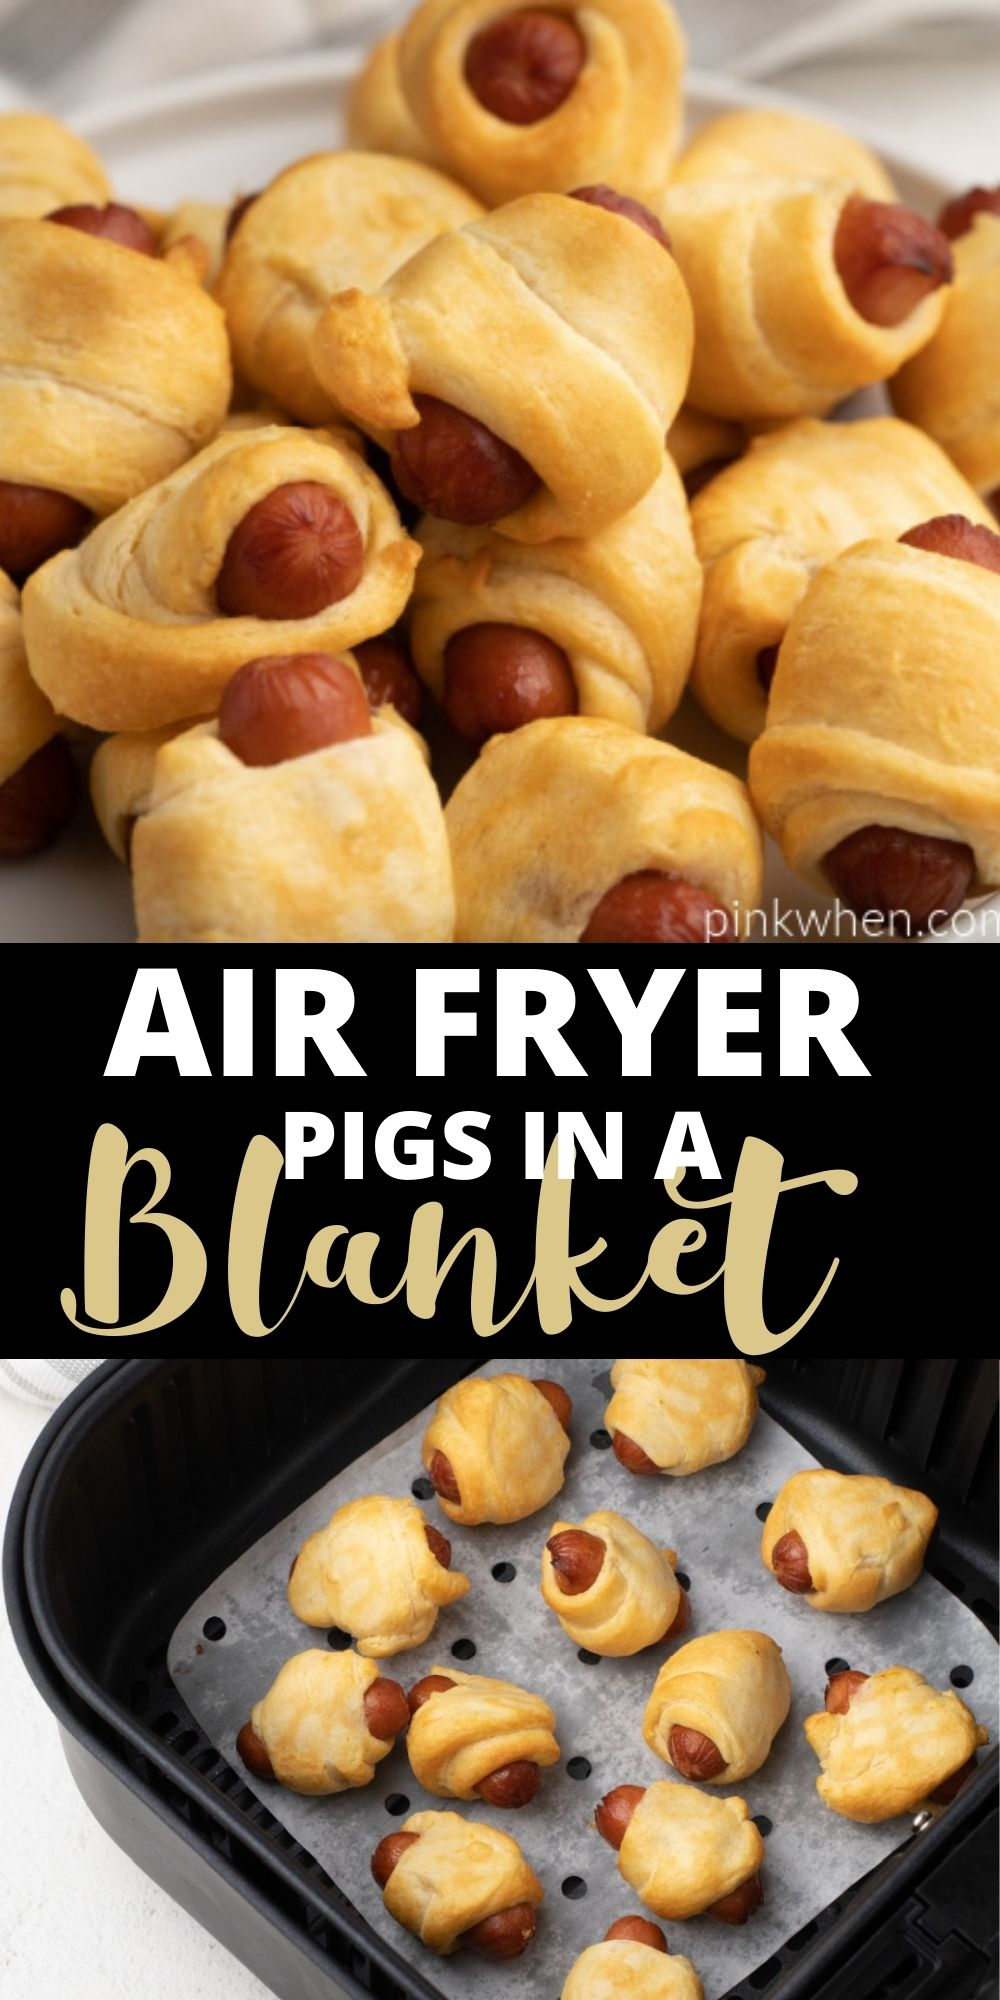 Pigs in a Blanket are made quick and easy in the Air Fryer! This easy appetizer uses crescent rolls and cocktail sausages for a delicious snack that can be made in just 10 minutes! An easy recipe the whole family will love.